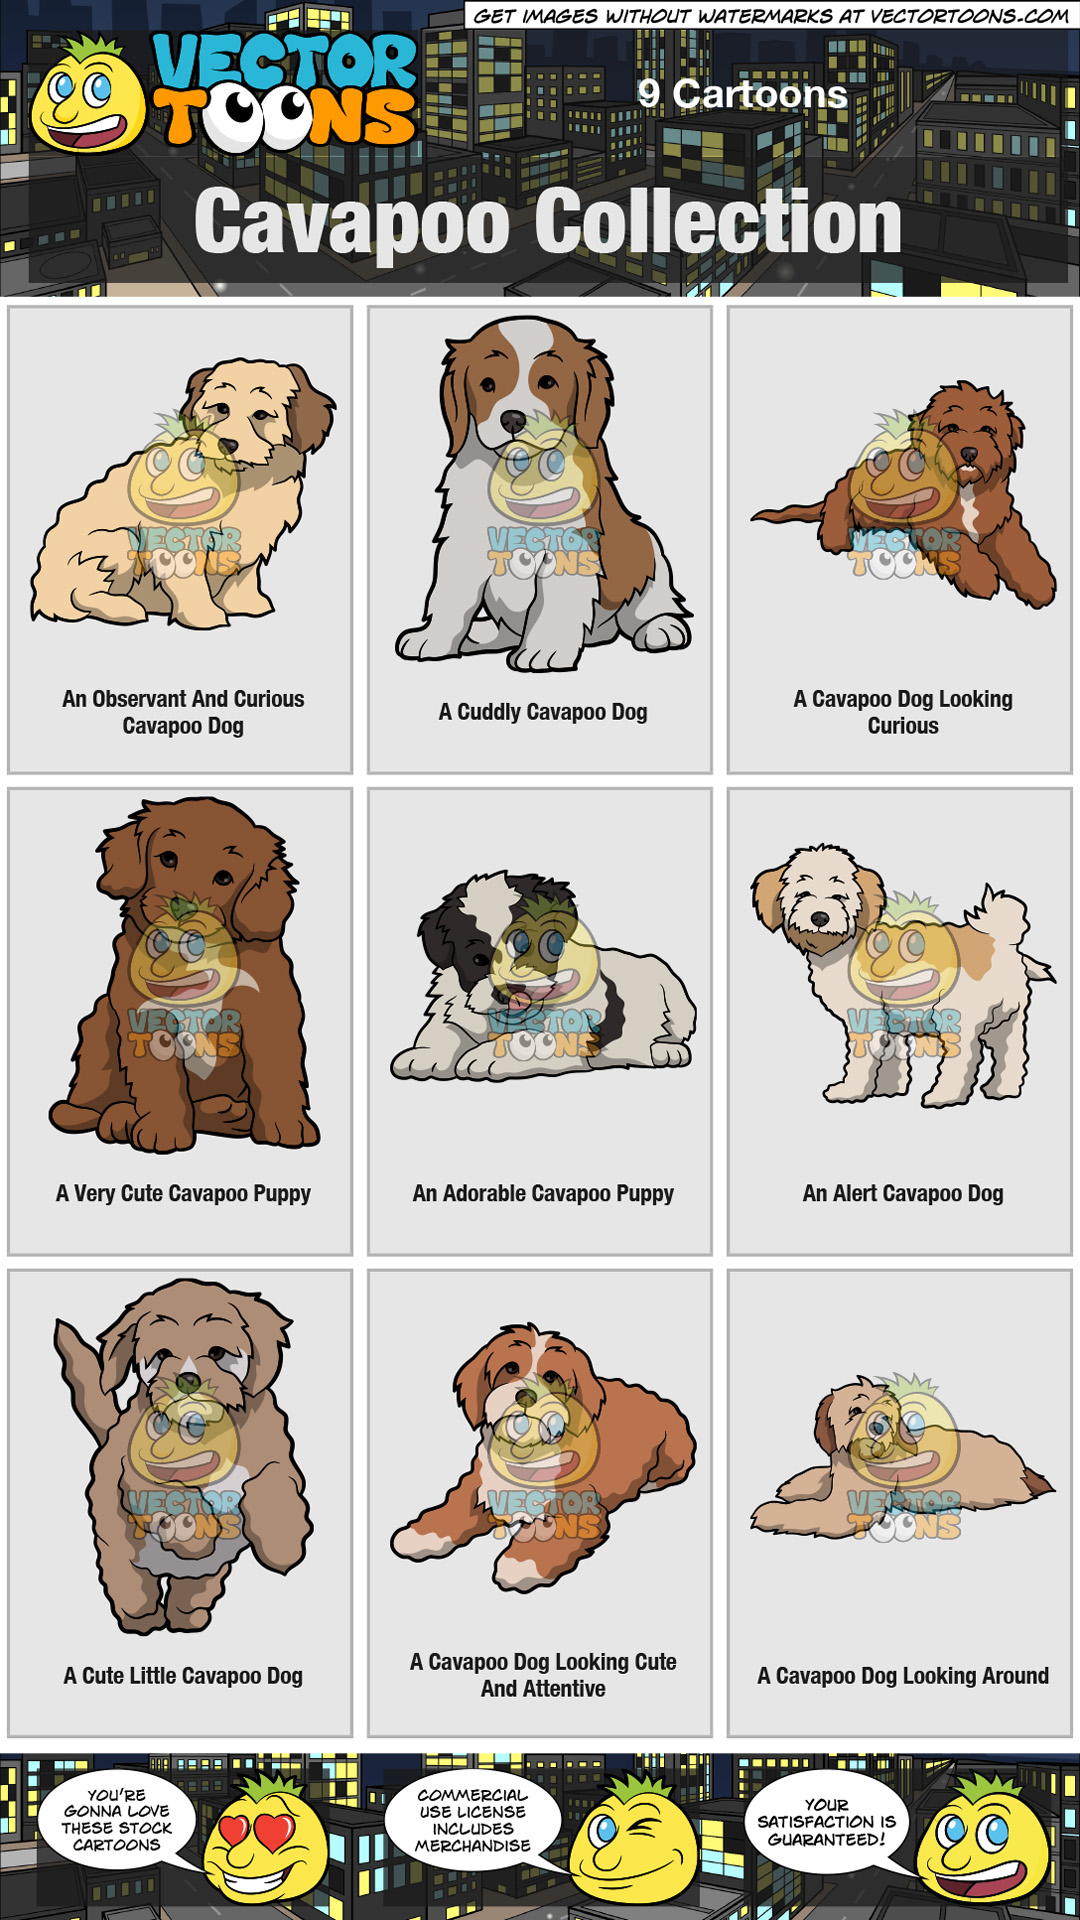 Cavapoo Collection thumbnail